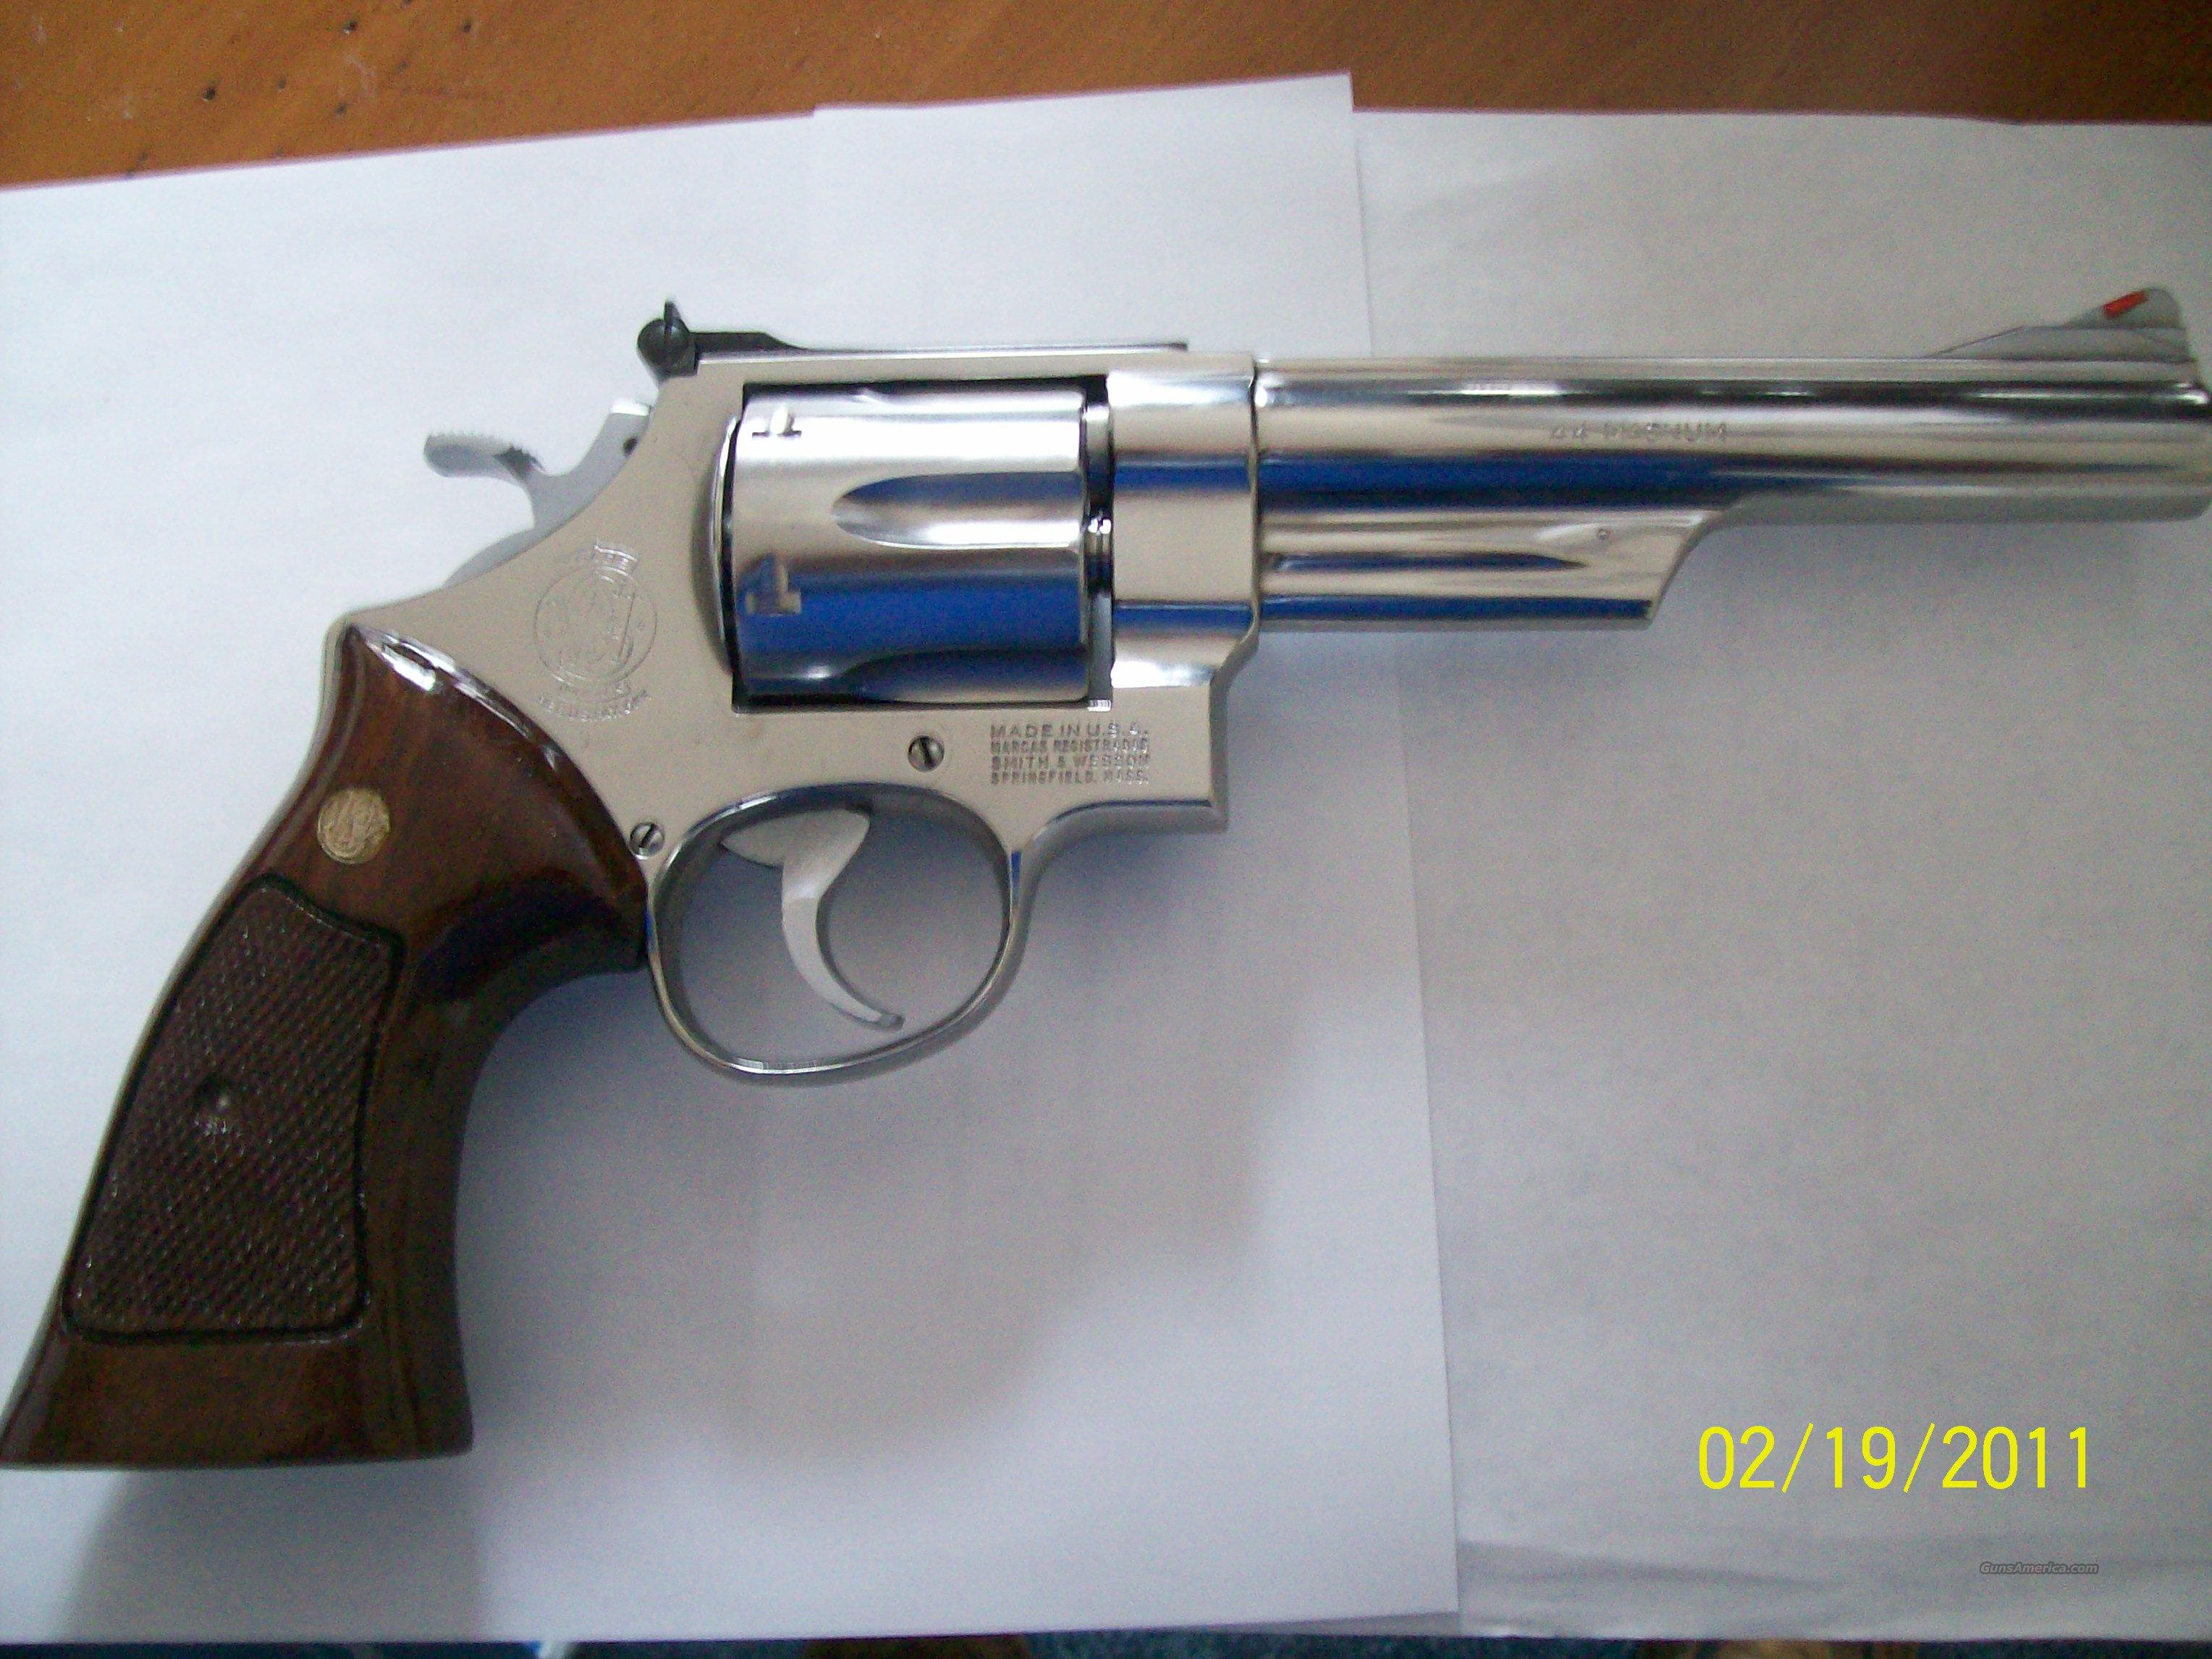 S&W 44 Magnum - Model 629-1  Guns > Pistols > Smith & Wesson Revolvers > Model 629